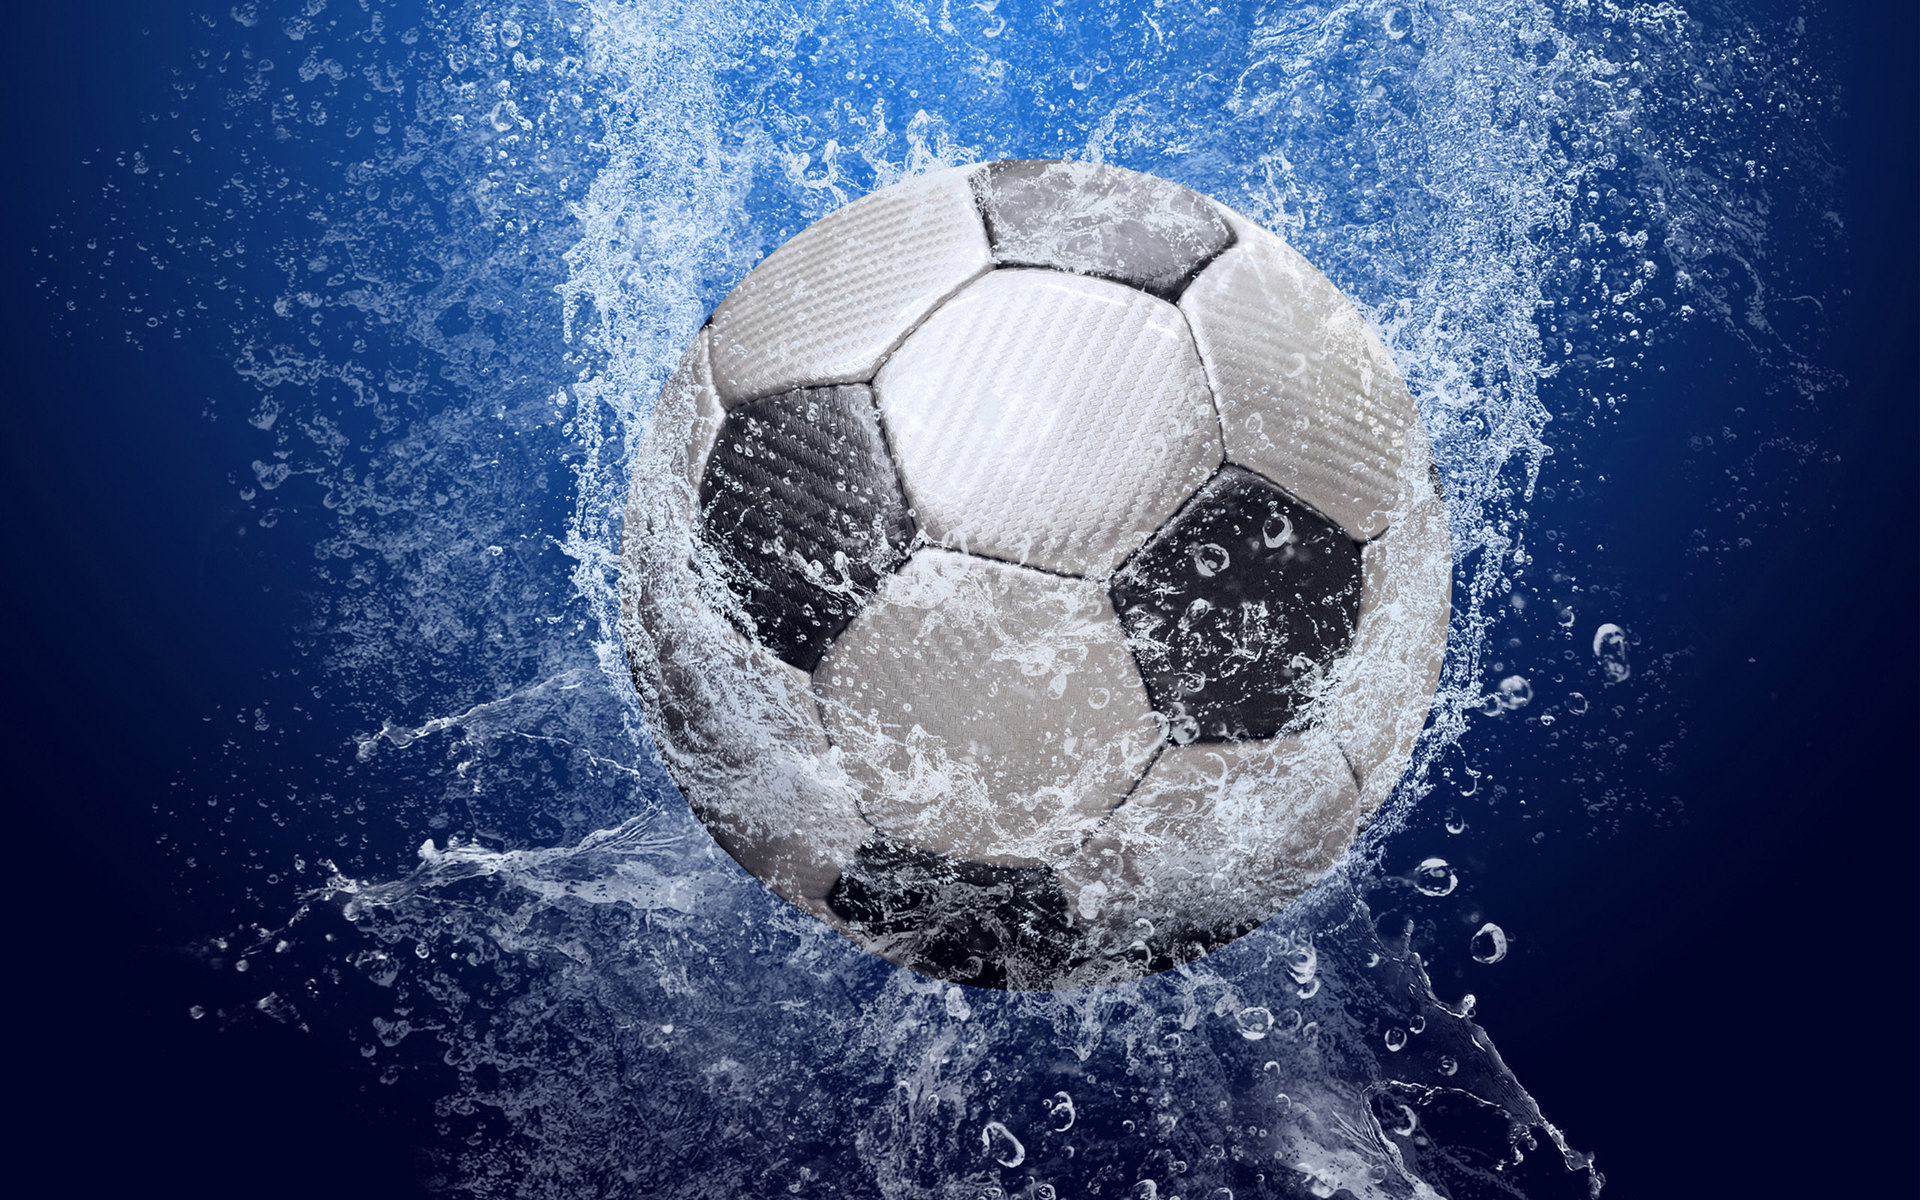 Soccer Players Wallpapers Hd Soccer Wallpapers 1920x1200